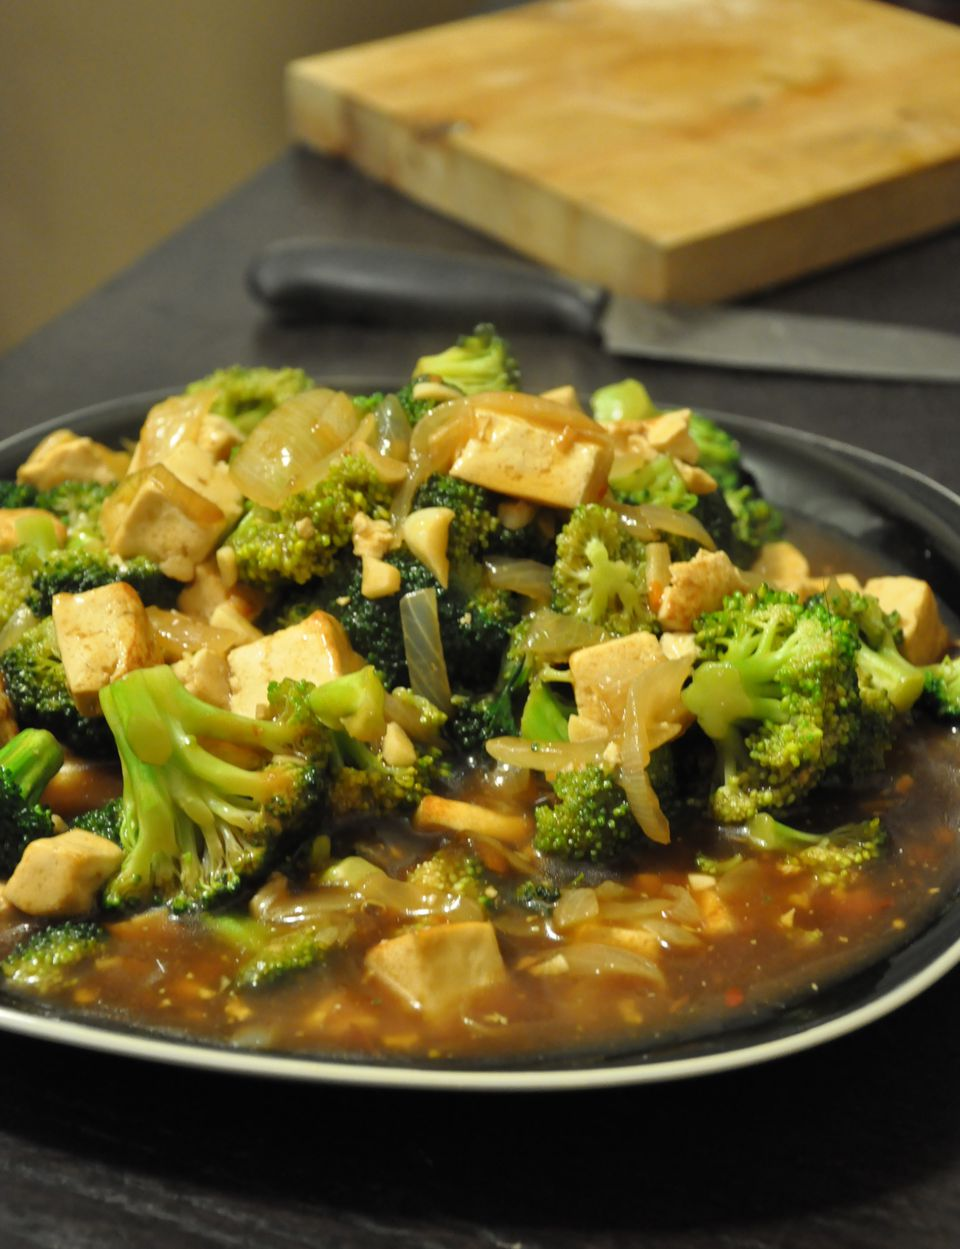 Vegetarian and vegan tofu recipes for breakfast lunch and dinner tofu and broccoli in garlic sauce forumfinder Images